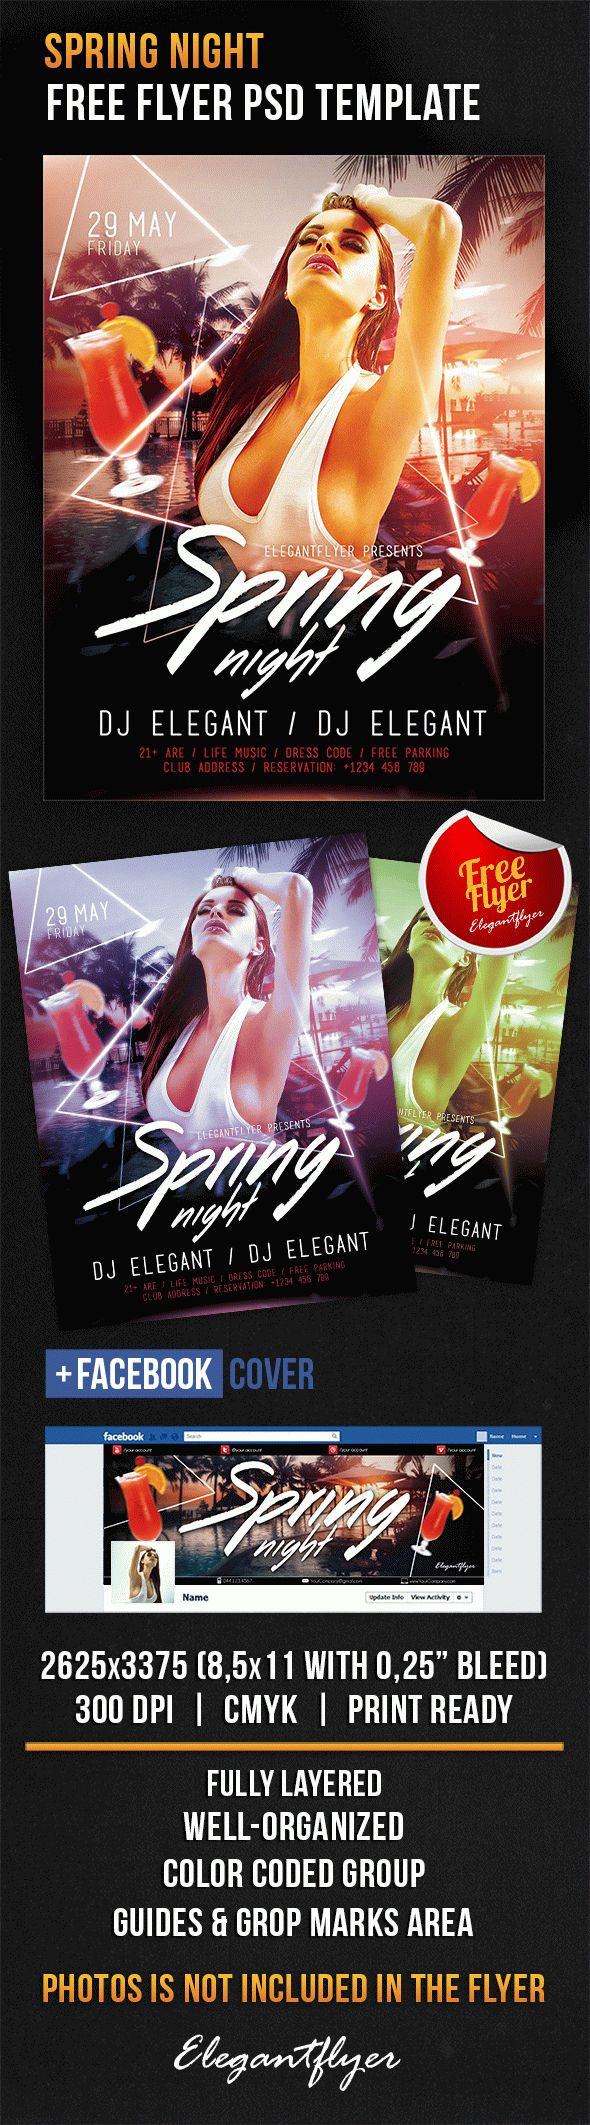 Spring Night – Free Flyer PSD Template + Facebook Cover